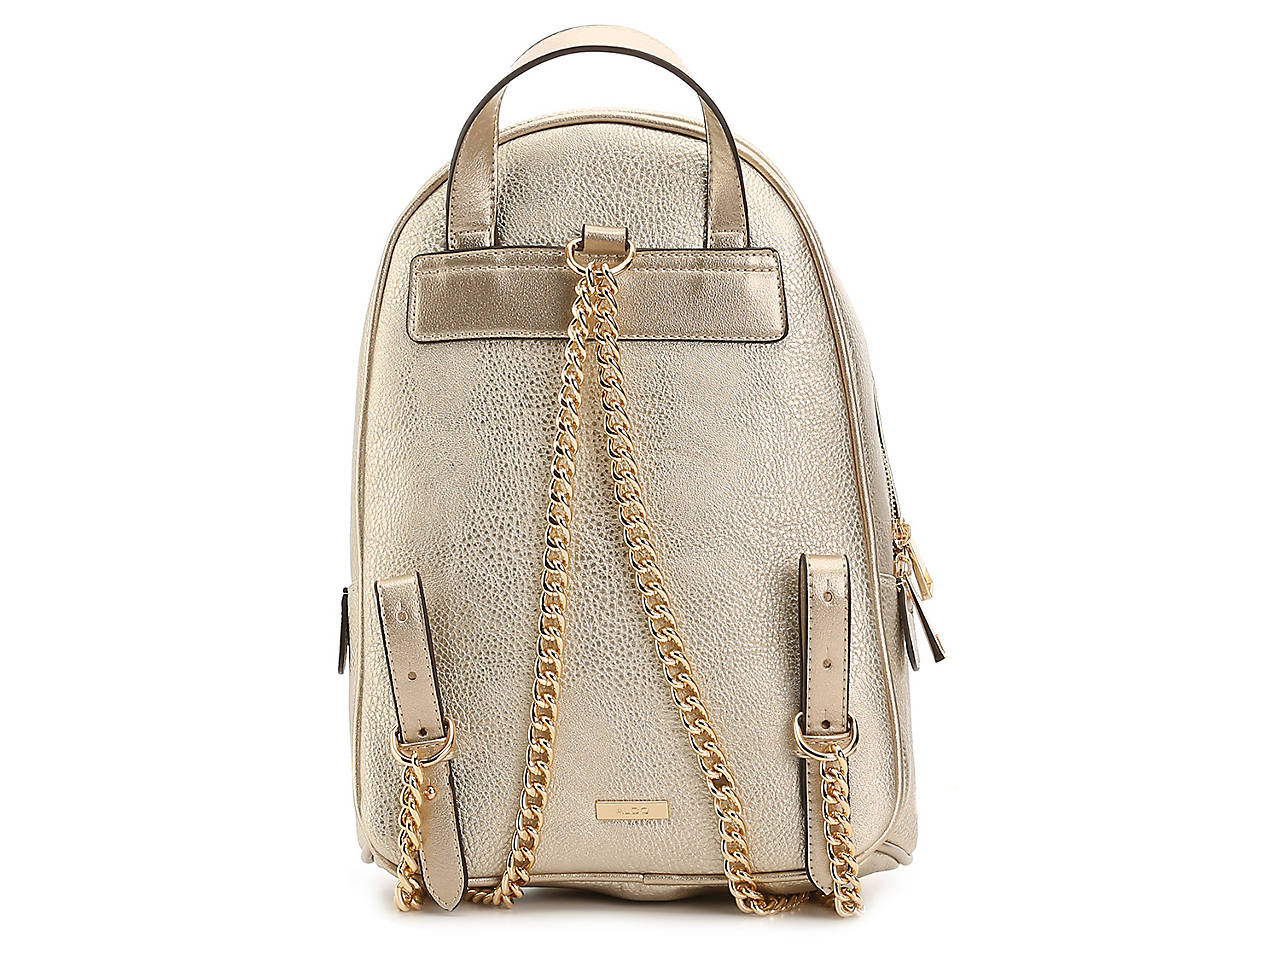 edc1ed3153f Aldo Acenaria Mini Backpack Women s Handbags   Accessories